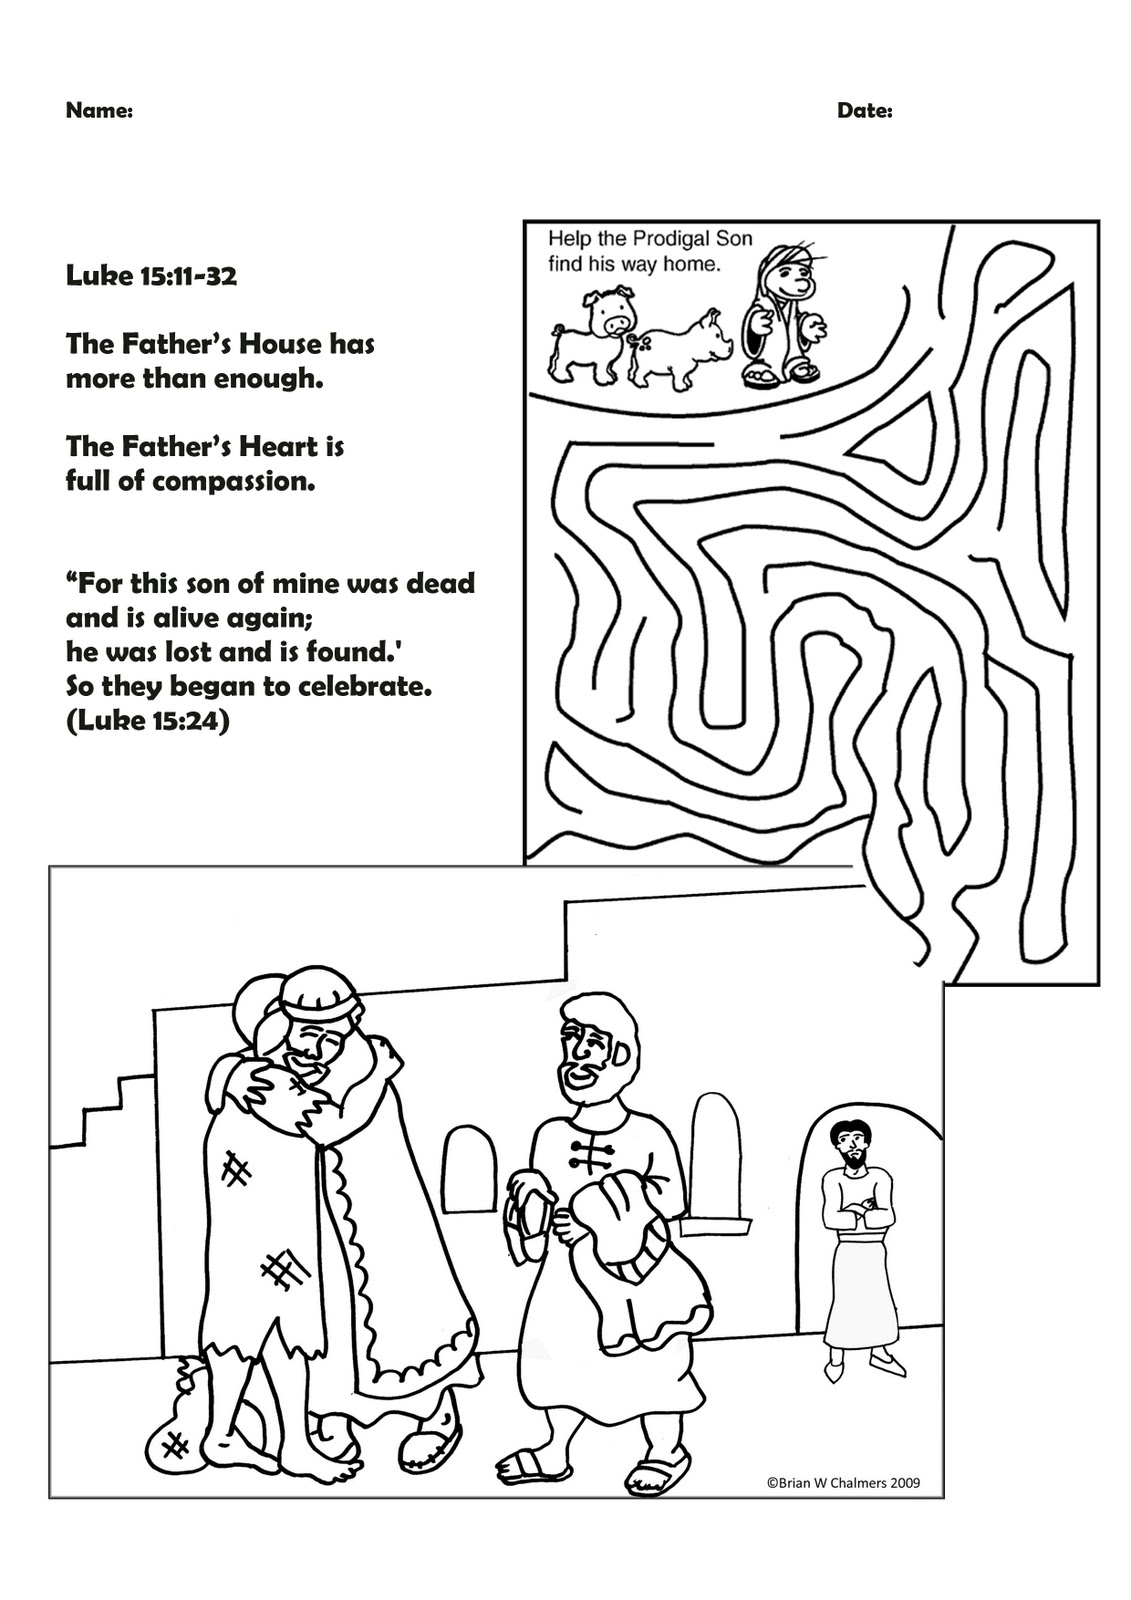 Coloring Pages The Prodigal Son Coloring Pages prodigal son coloring sheet eassume com collection of worksheet bloggakuten